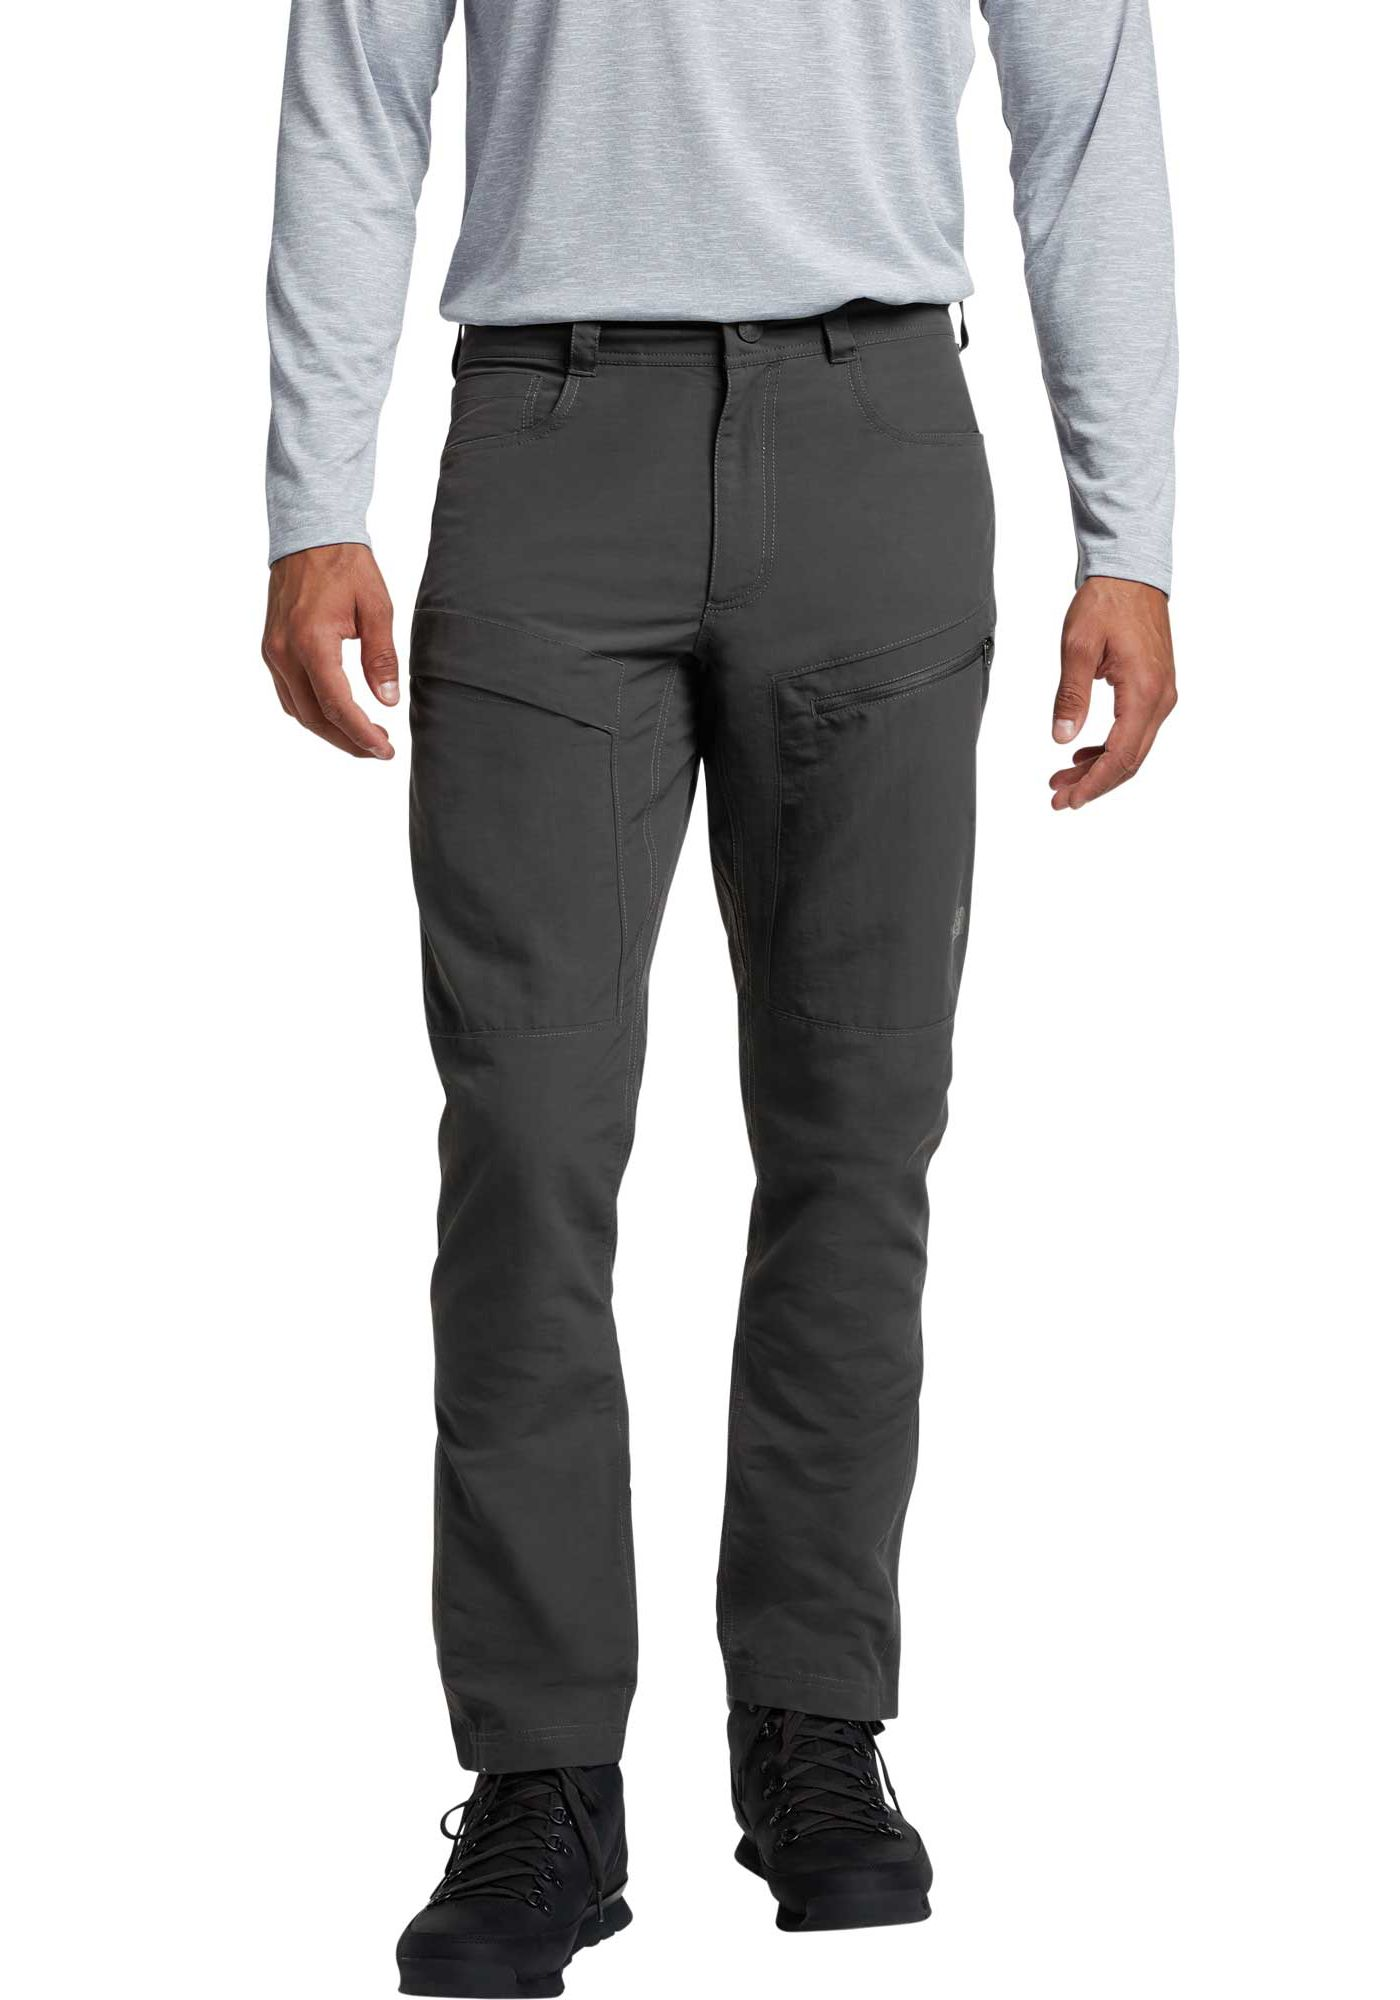 The North Face Men's Paramount Trail Pants